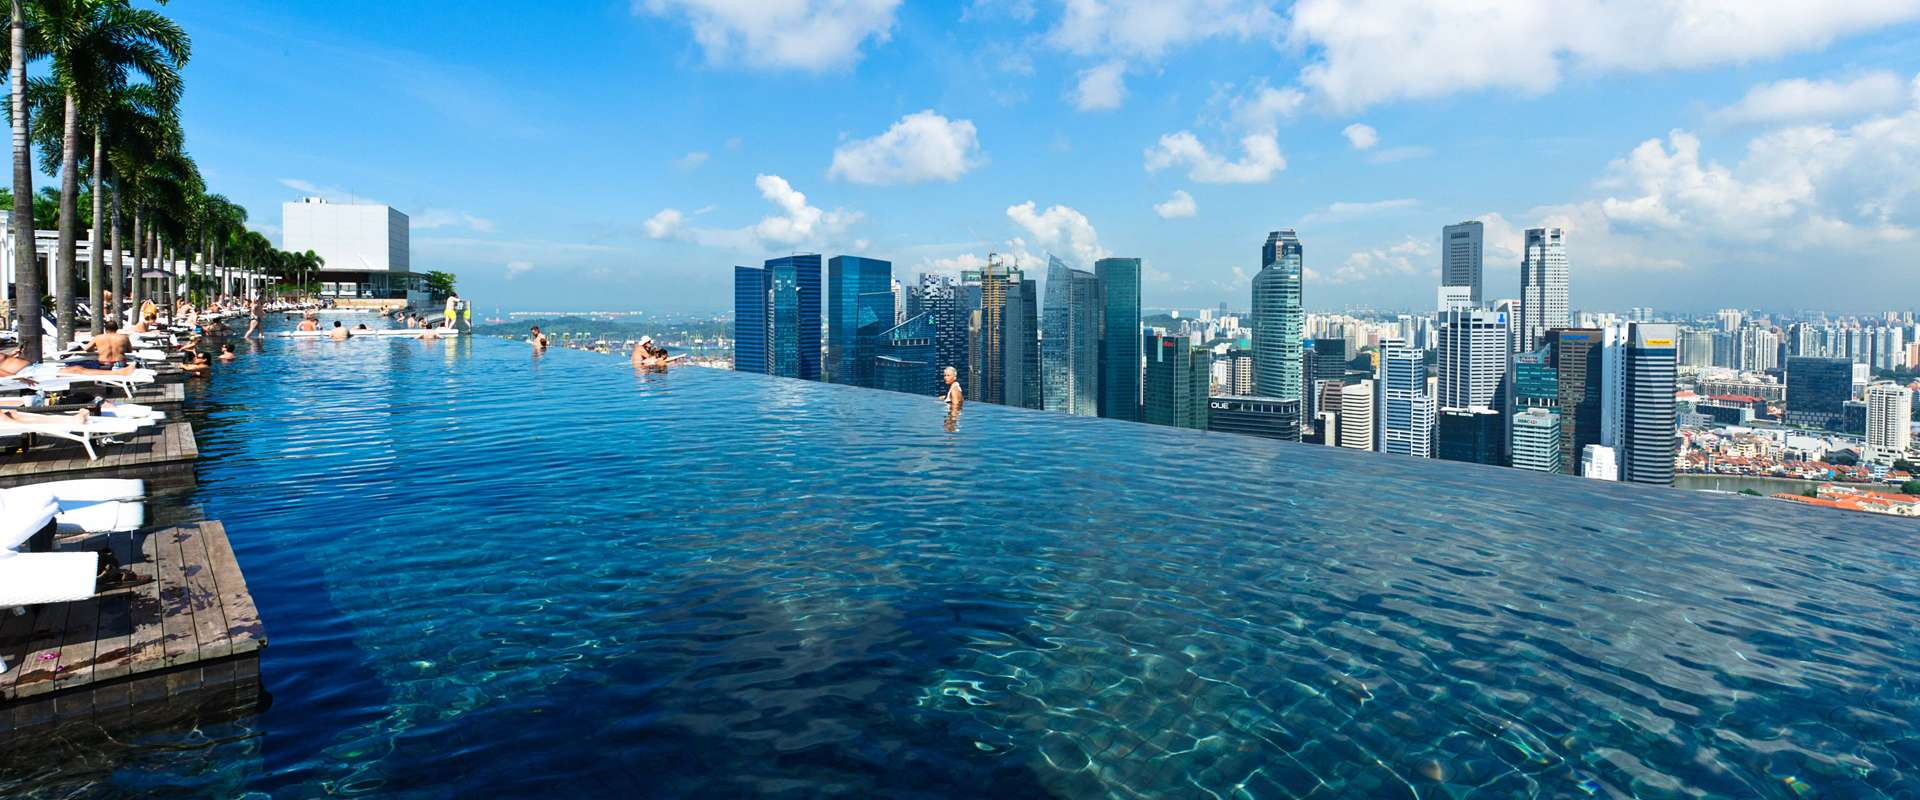 Marina Bay Sands Singapore Pool The Image Kid Has It